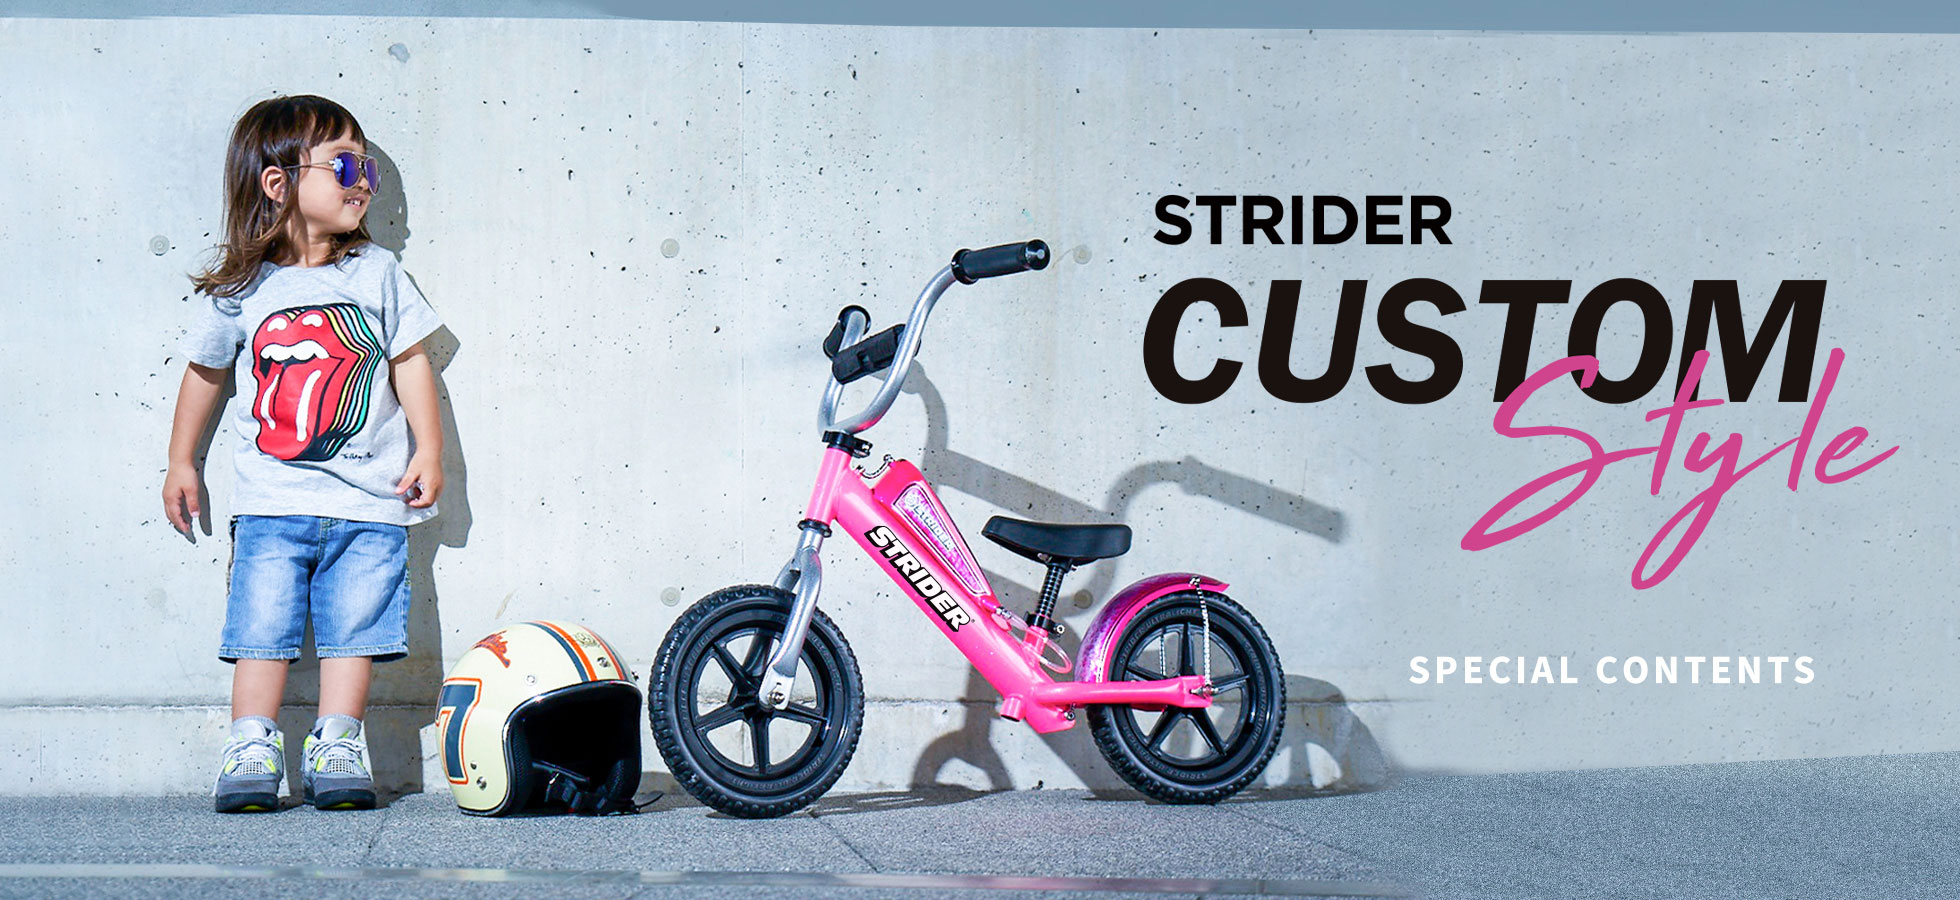 STRIDER CUSTOM Stylle SPECIAL CONTENTS